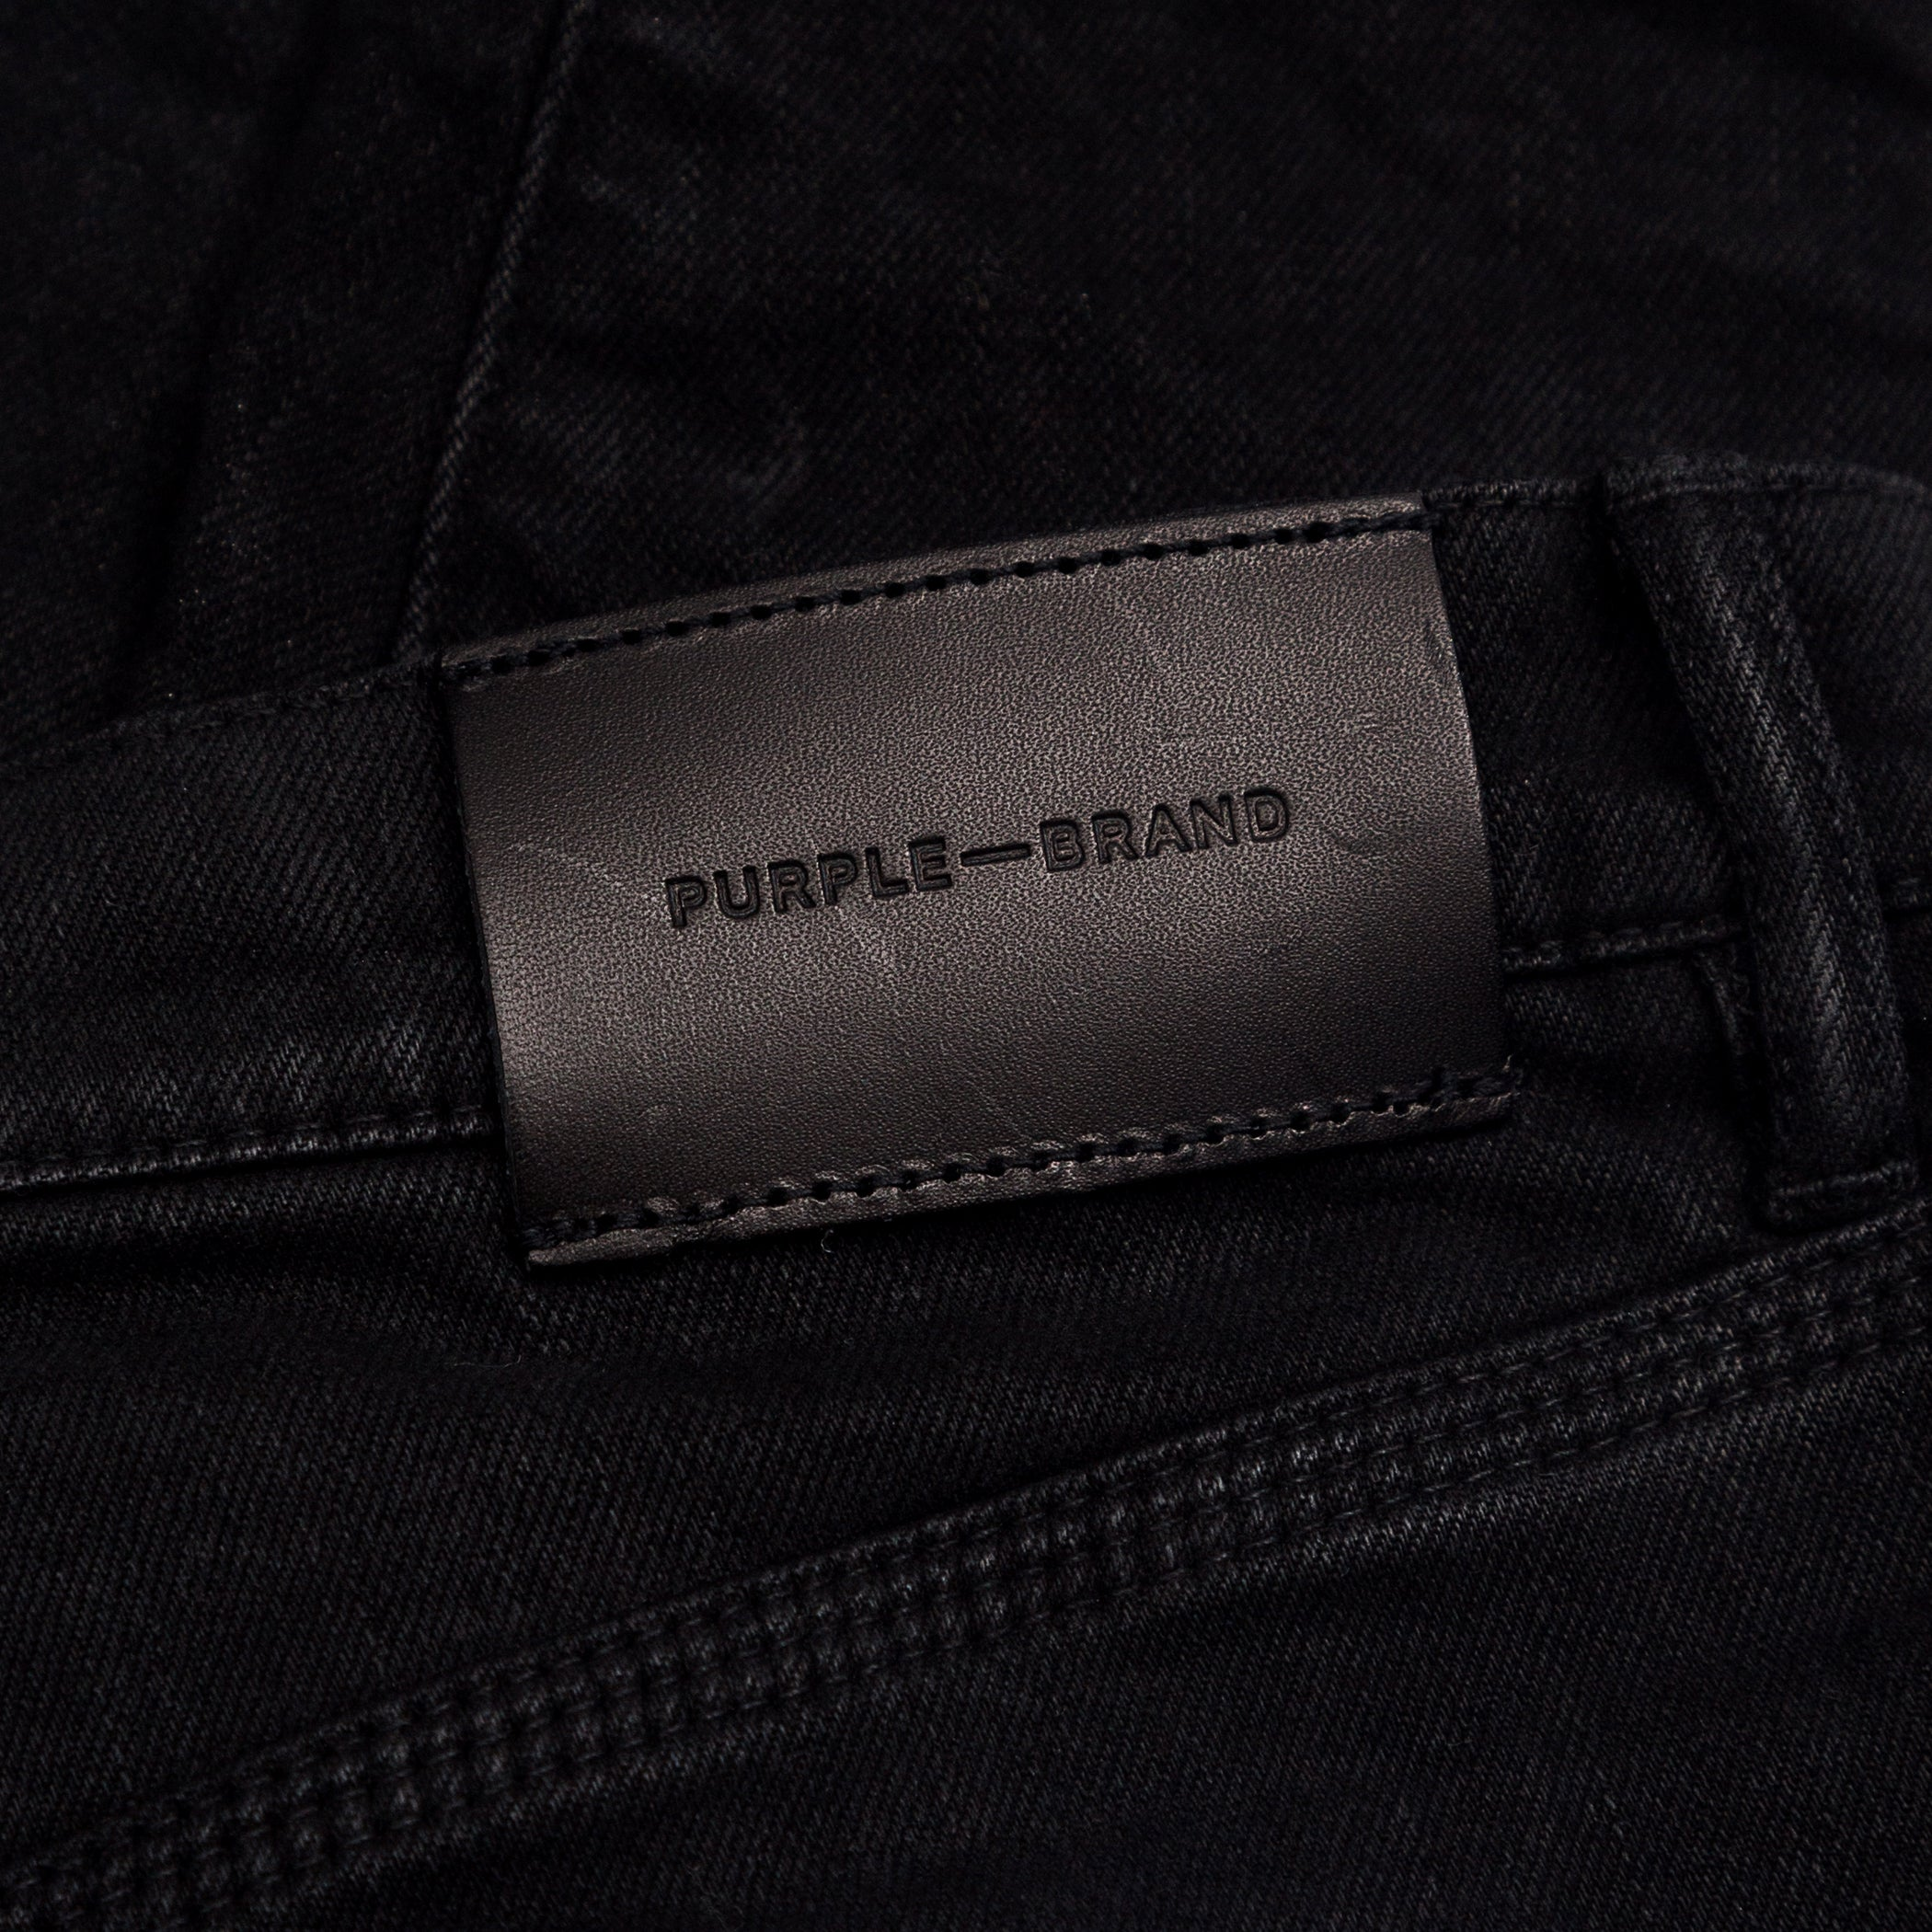 Purple Brand - Black Resin Jeans